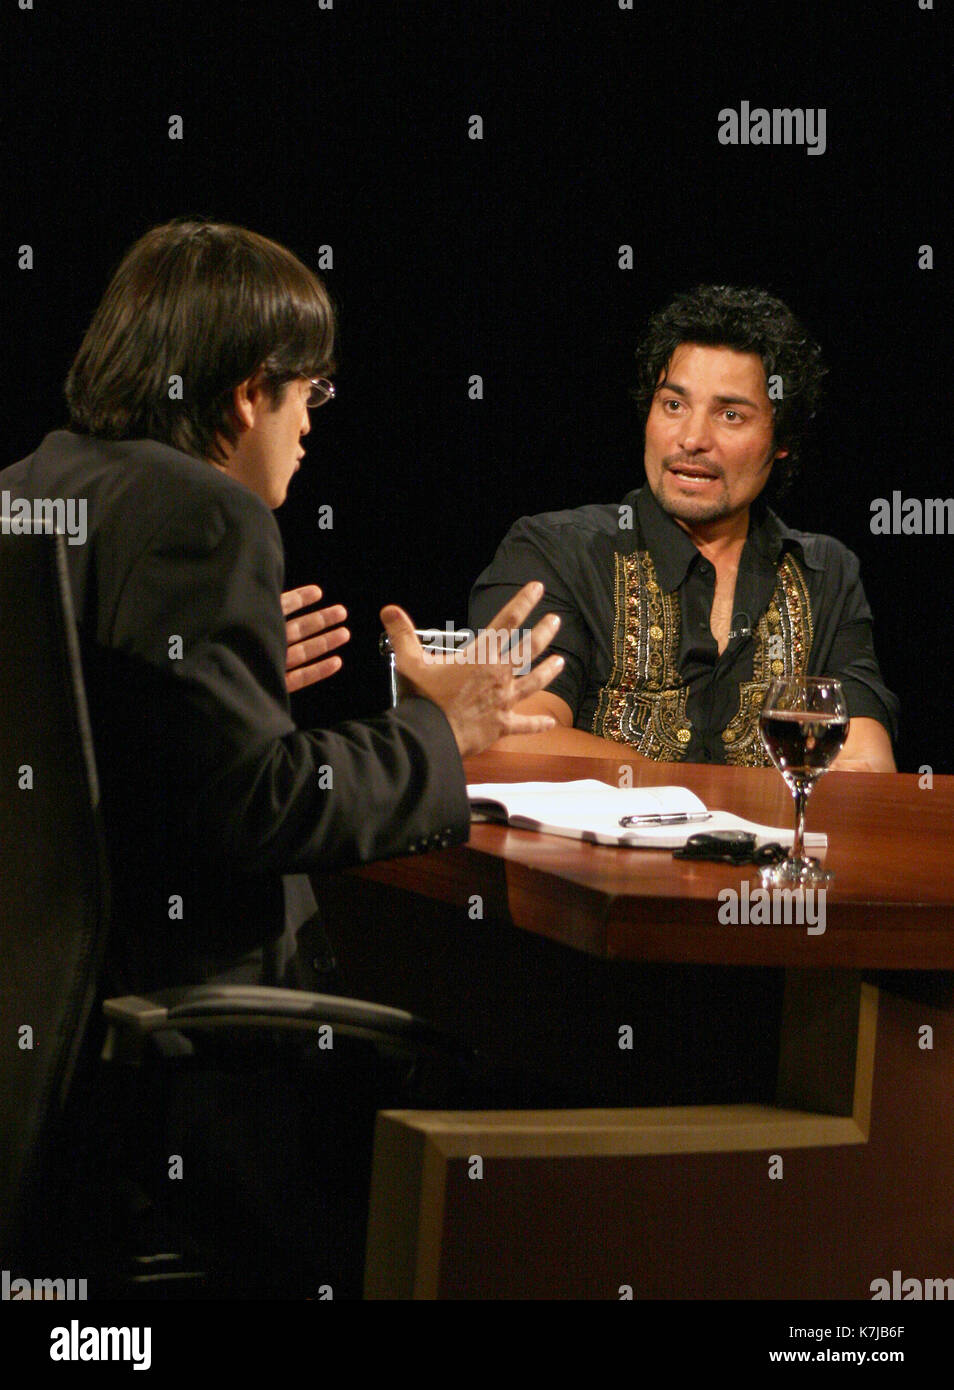 Chayanne Being Interviewed By Jaime Bayly On His Program On Mega Tv Stock Photo Alamy Tal como anunció el escritor la semana pasada, núñez del arco, de 22 años, lo hará padre por tercera vez en abril. https www alamy com chayanne being interviewed by jaime bayly on his program on mega tv image159599847 html